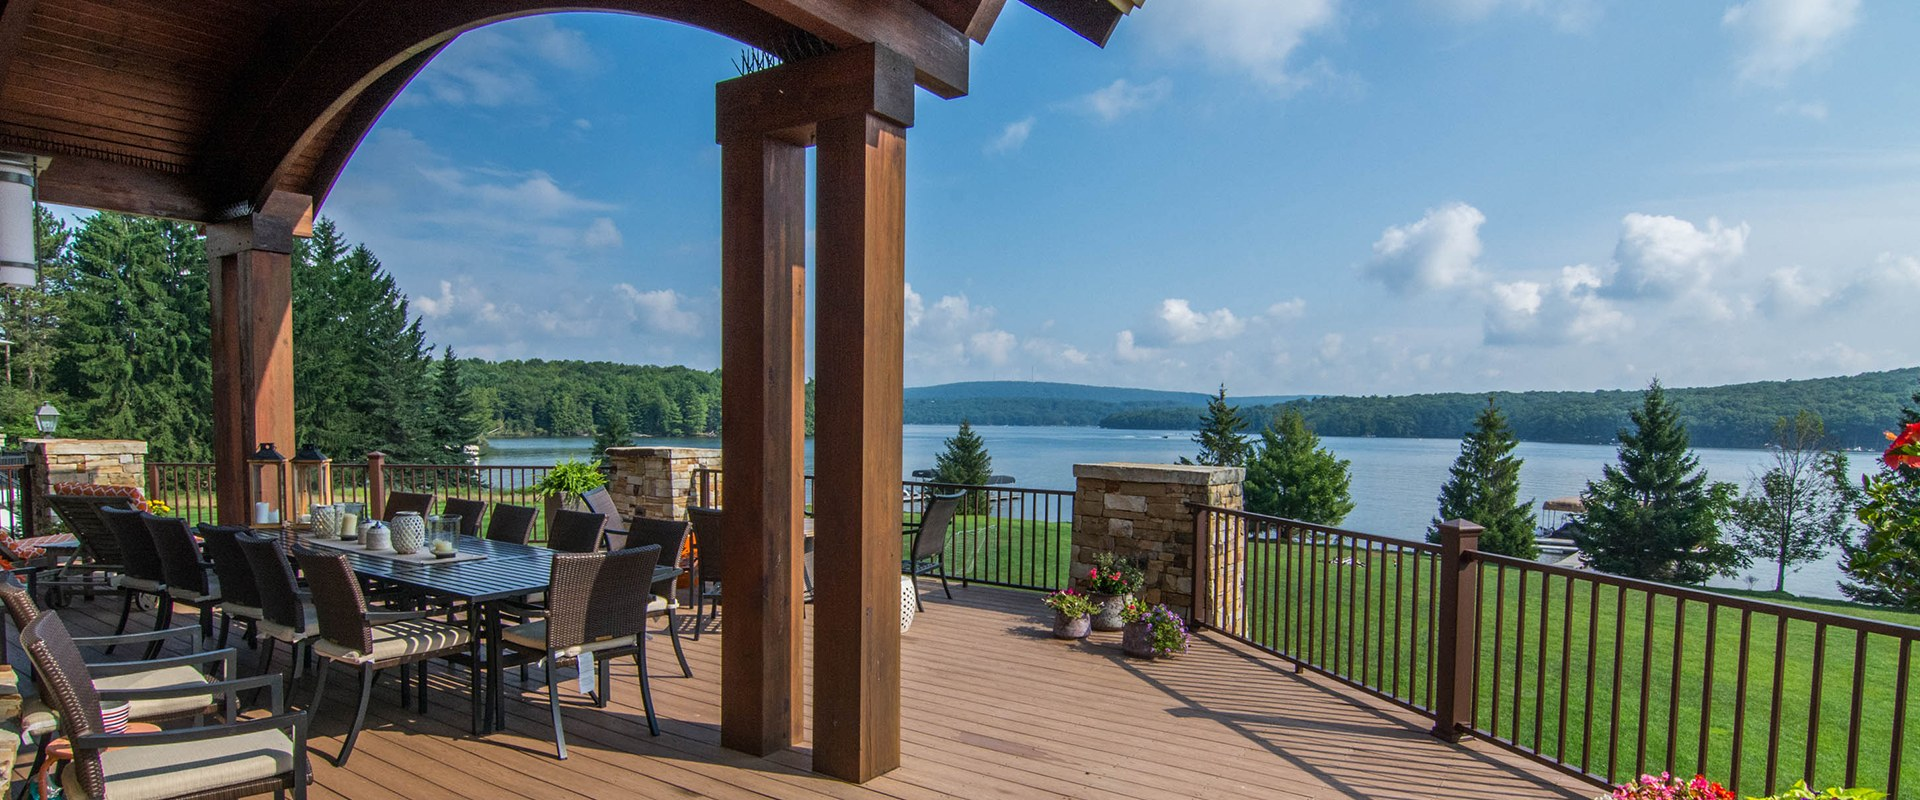 Deep Creek Lake Real Estate | Homes For Sale | Waterfront Homes